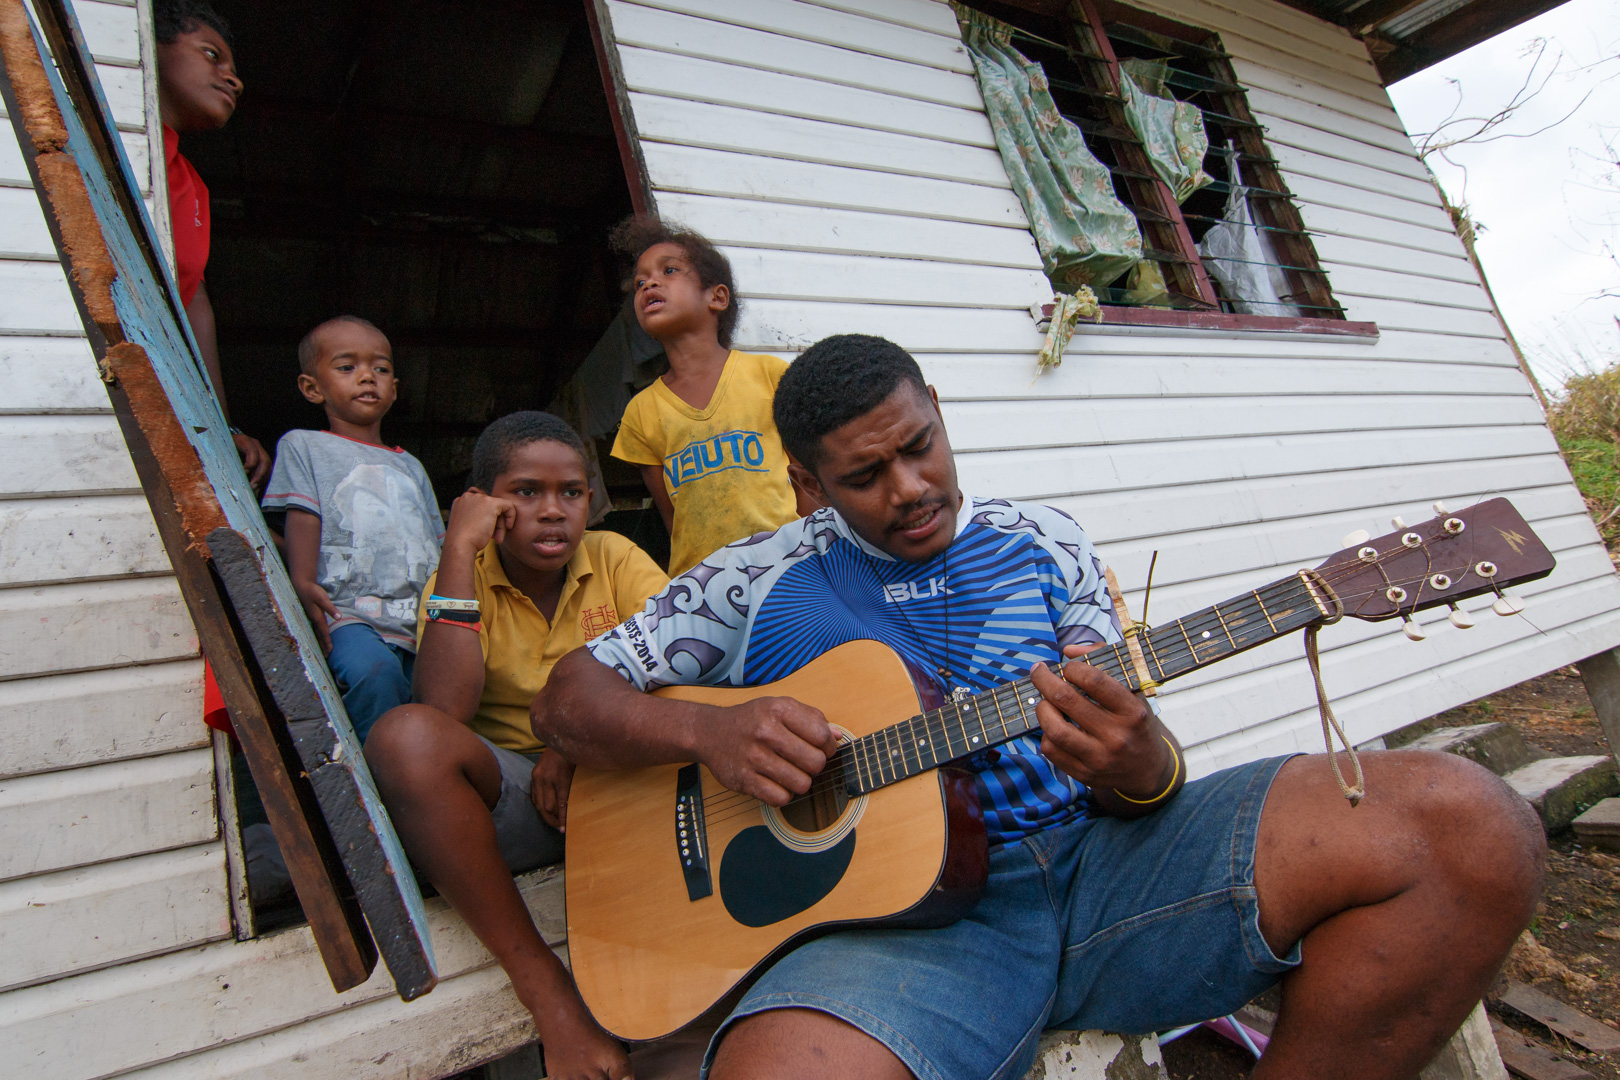 Children play guitar and sing songs to pass time while cleanup is underway in Naiseralagi village in Rakiraki, Fiji, after Cyclone Winston swept through the area on February 20, 2016.